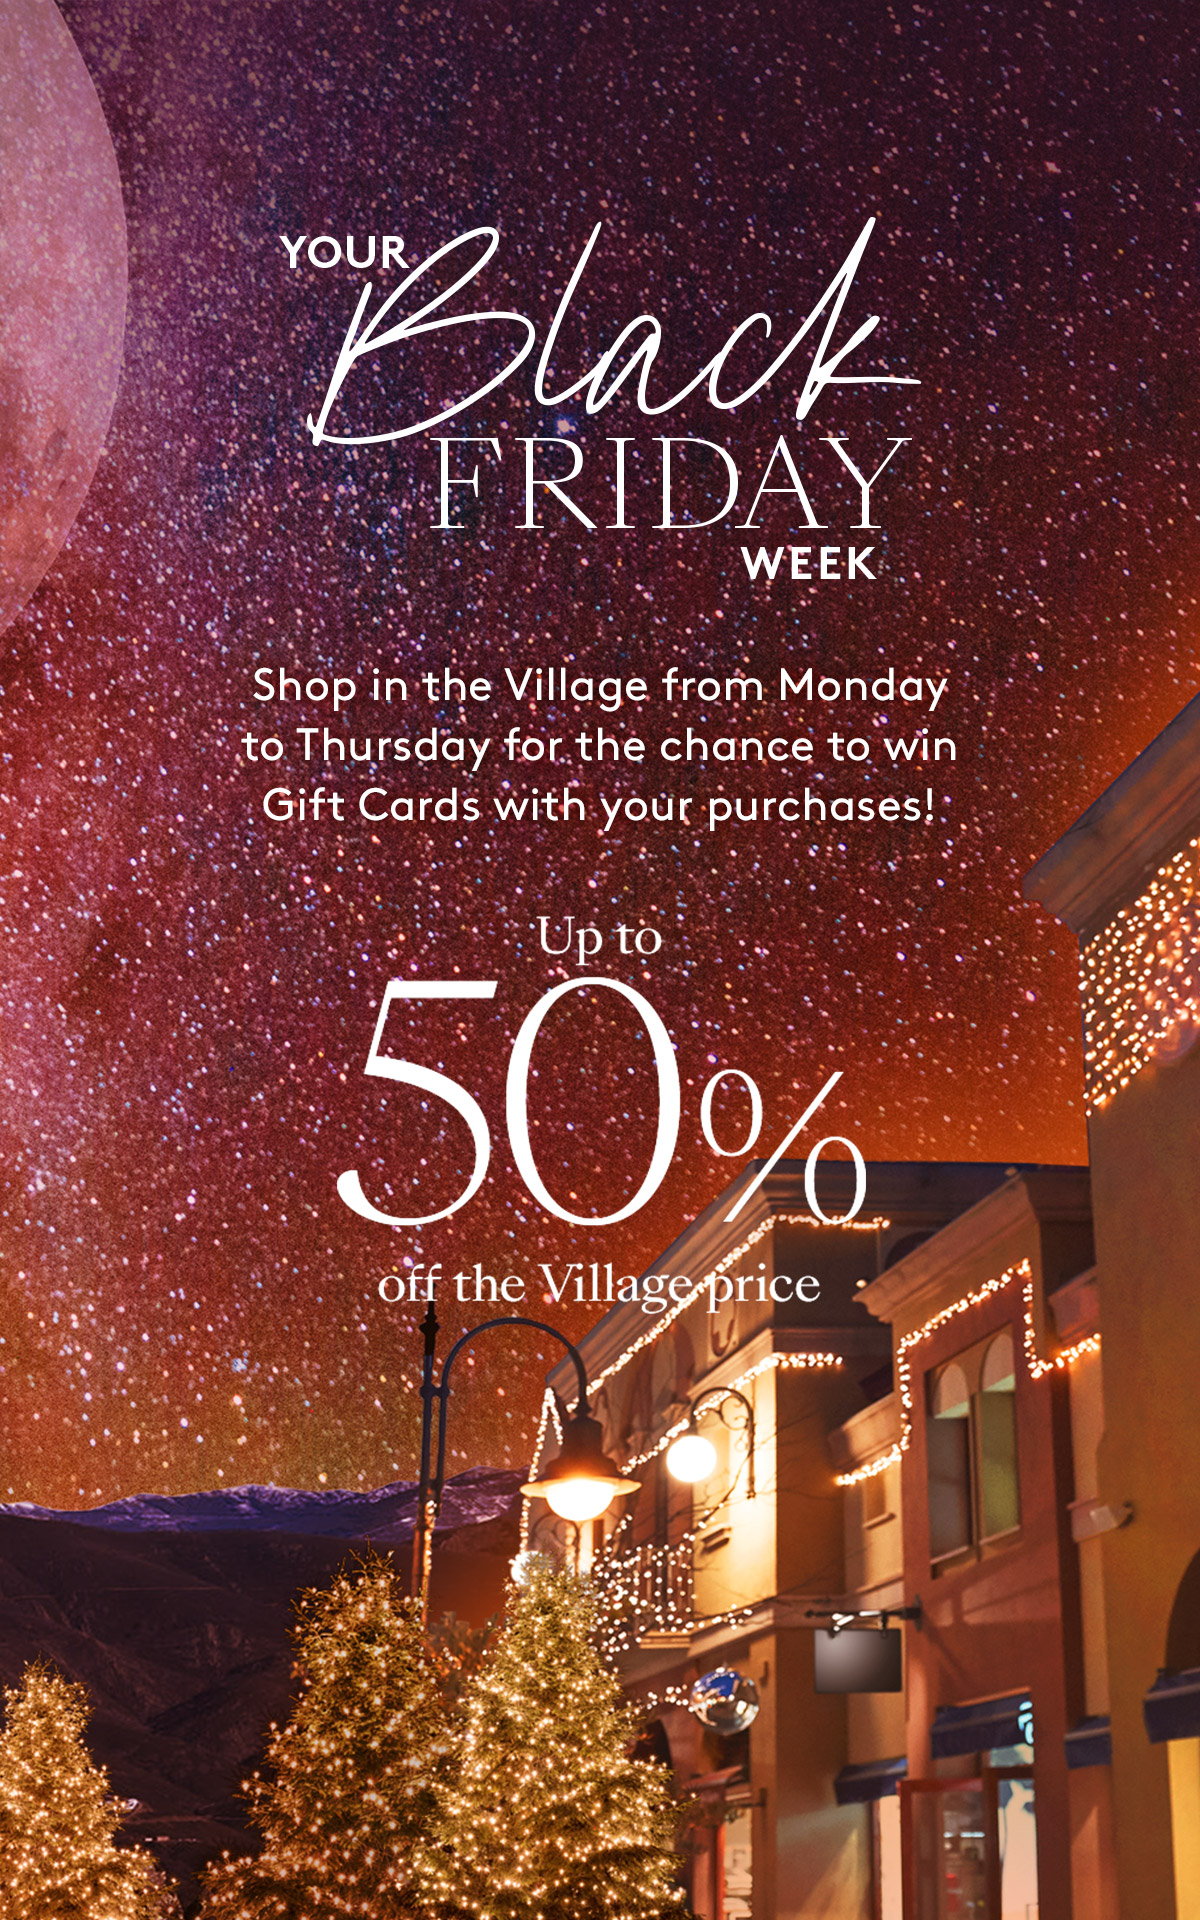 Your Black Friday week. Shop in the Village from Monday to Thursday for the chance to win Gift Cards with your purchases. Up to 50% off the Village price.